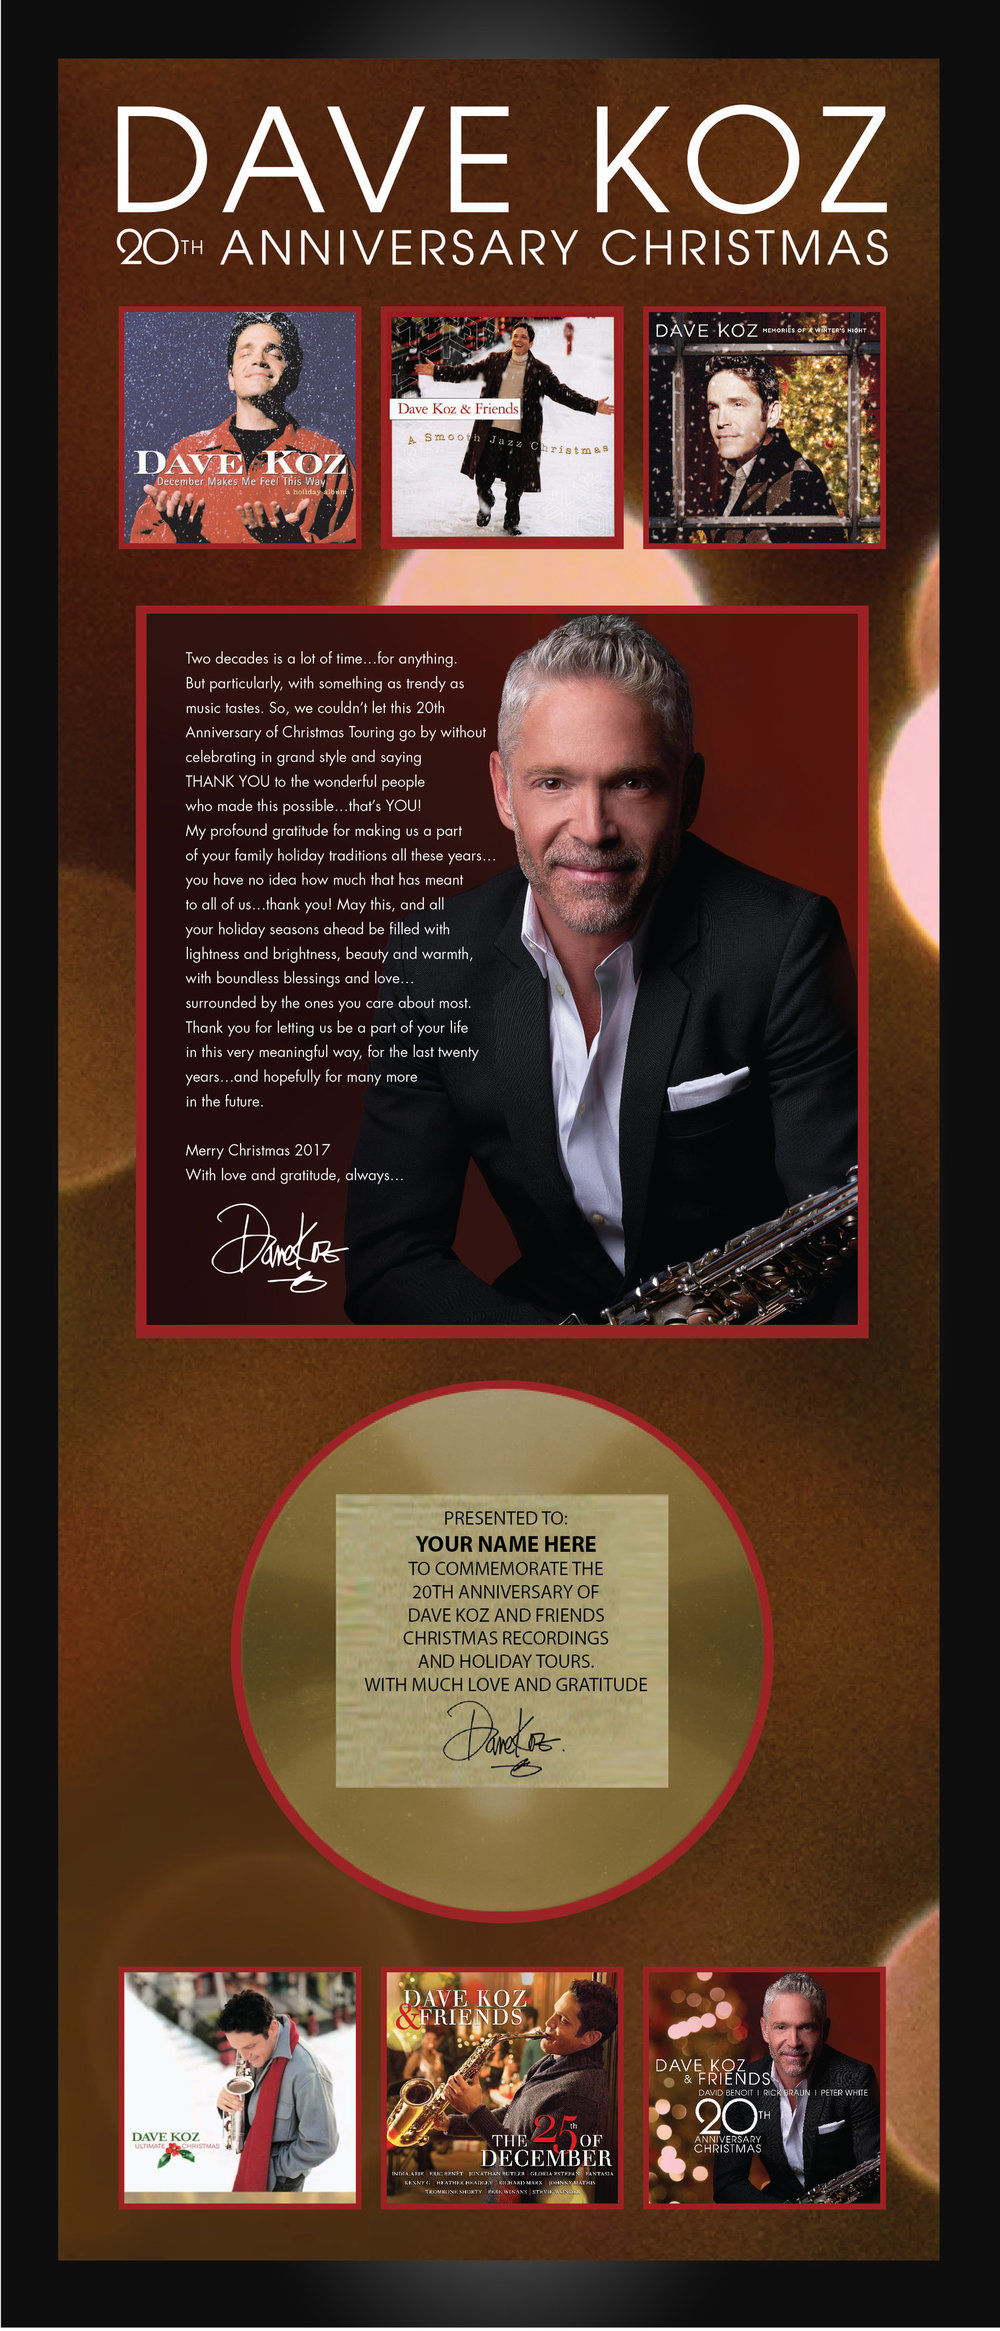 8 x 20 Dave Koz Gold album Award $225.00 Personalized with YOUR NAME,  this authentic Limited Edition collectible also comes with a Certificate of Authenticity hand signed by Dave. A memento that will last a lifetime.